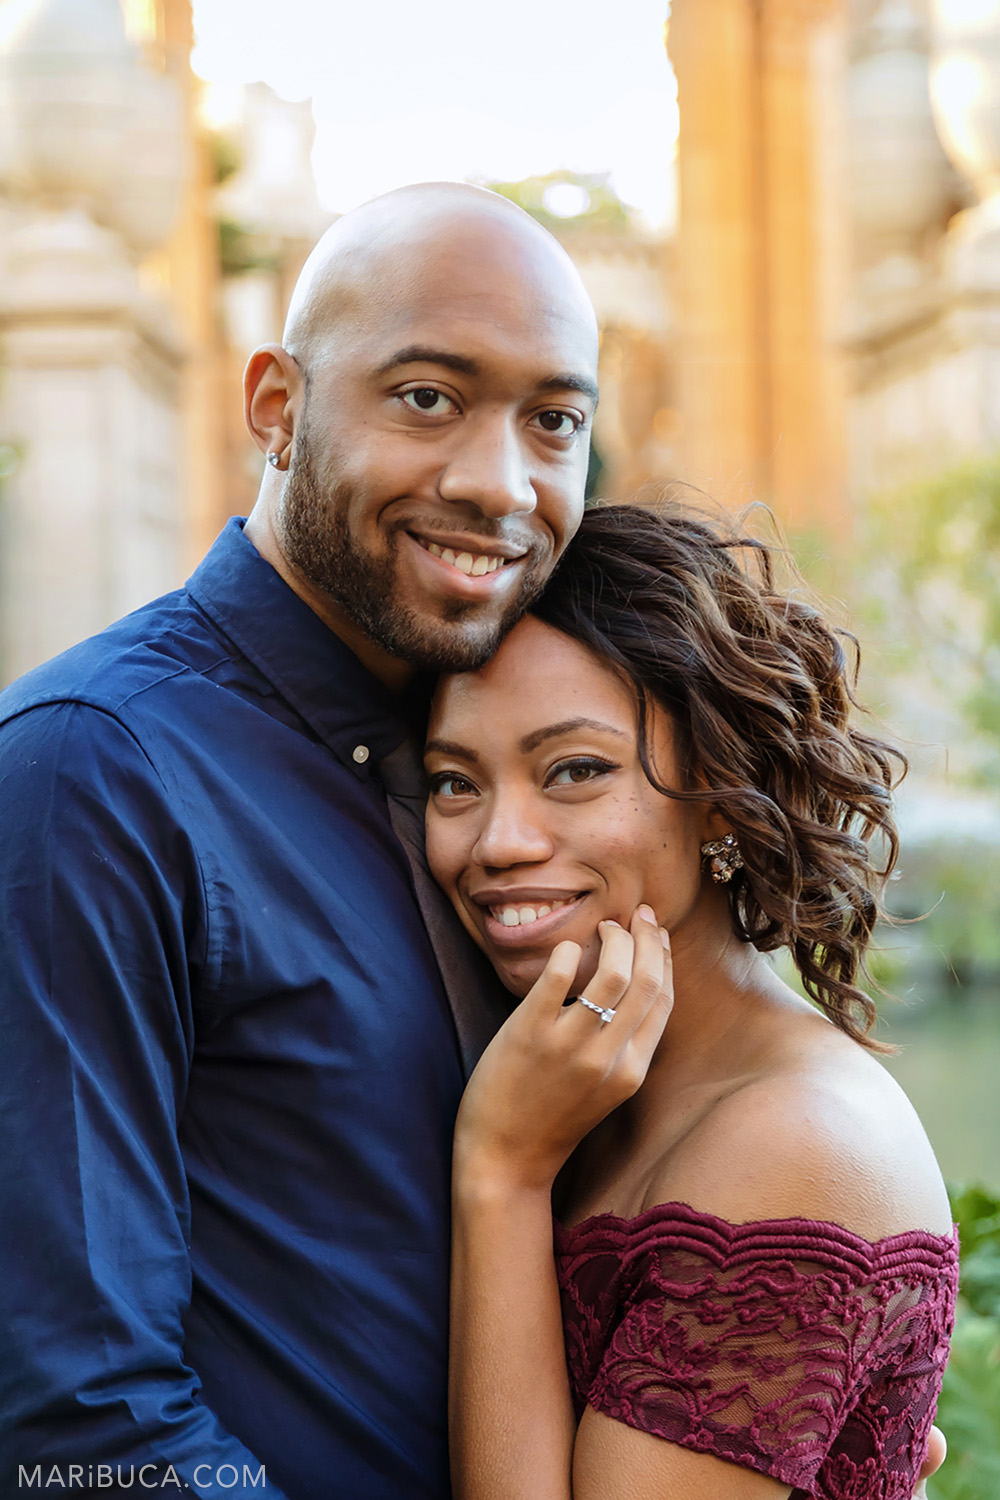 Portrait of the fiancee and fiance and they smile